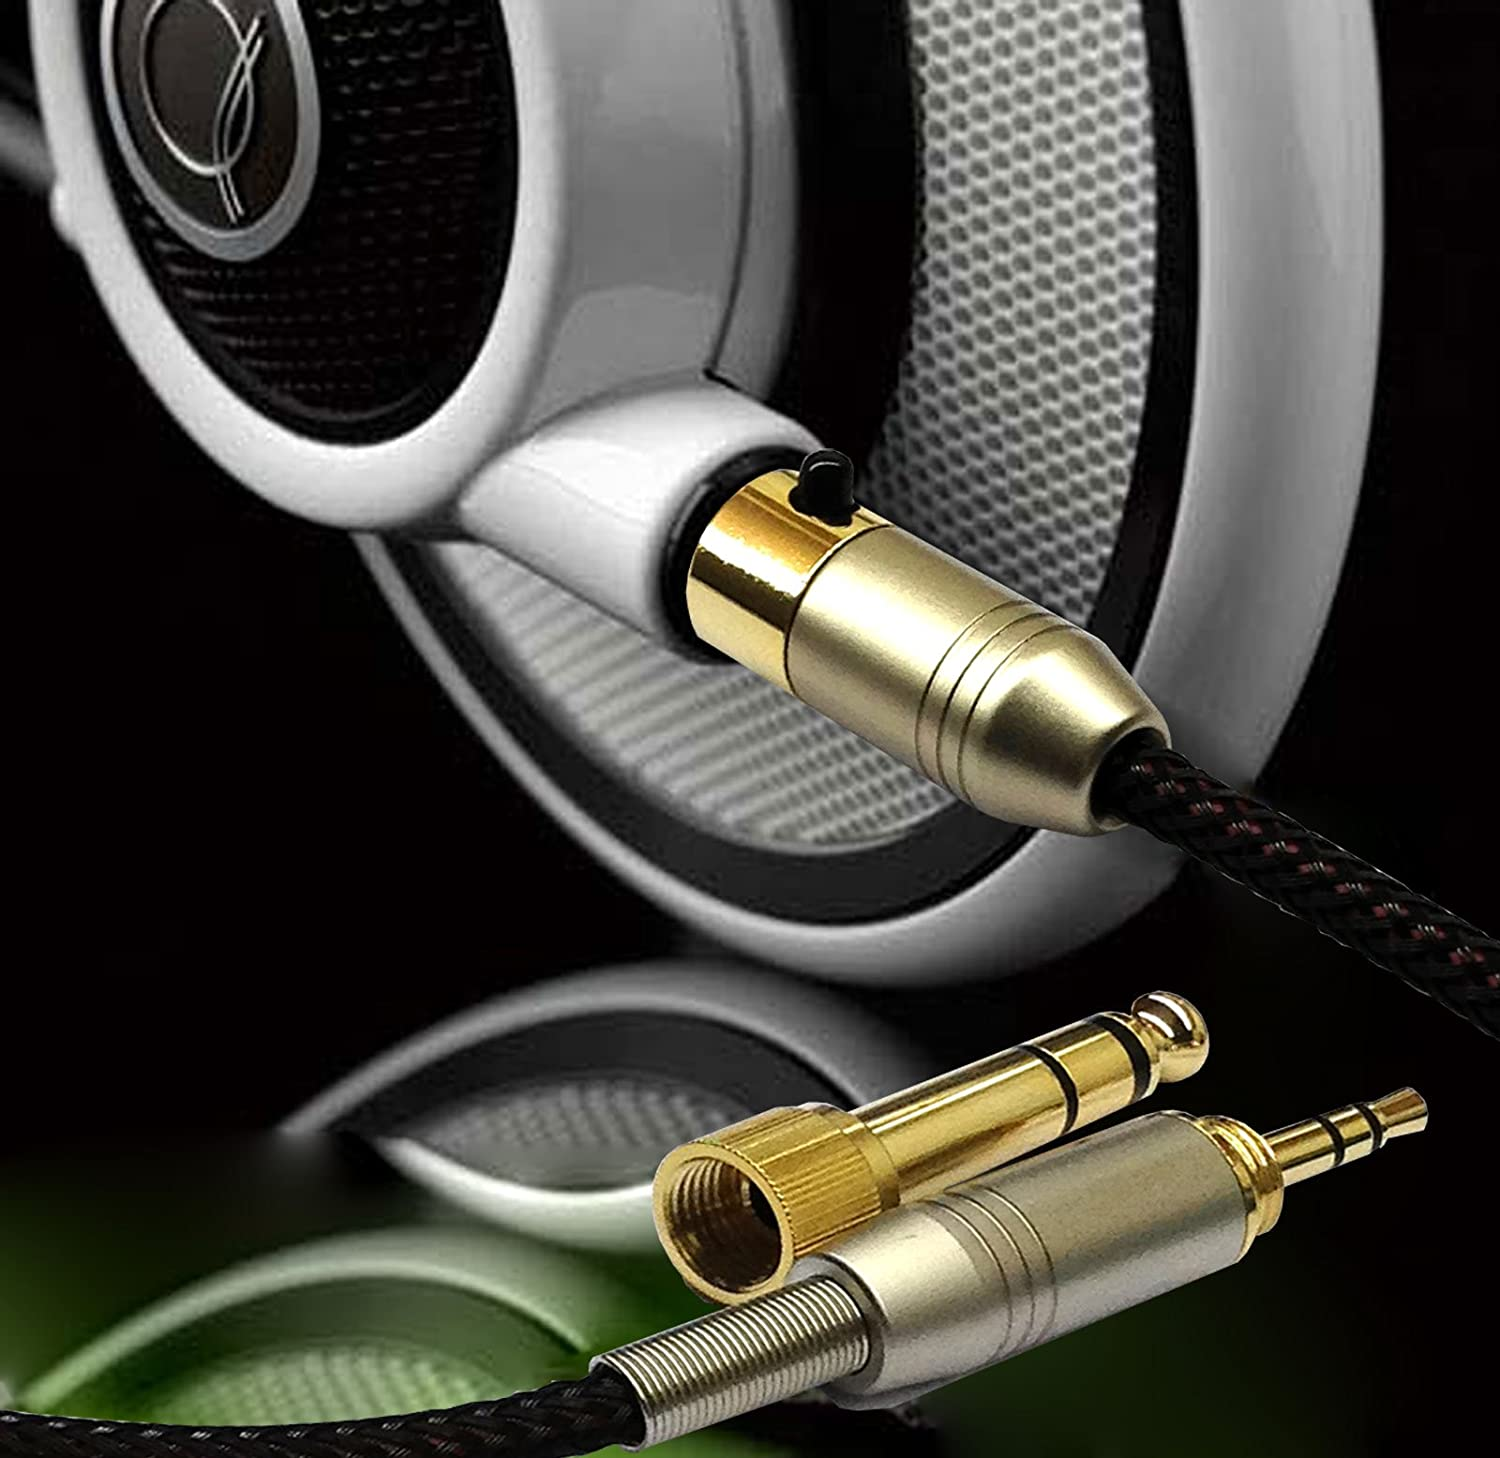 Amazon.com: 1.5m Replacement Audio upgrade Cable For AKG Q701 K702 ...